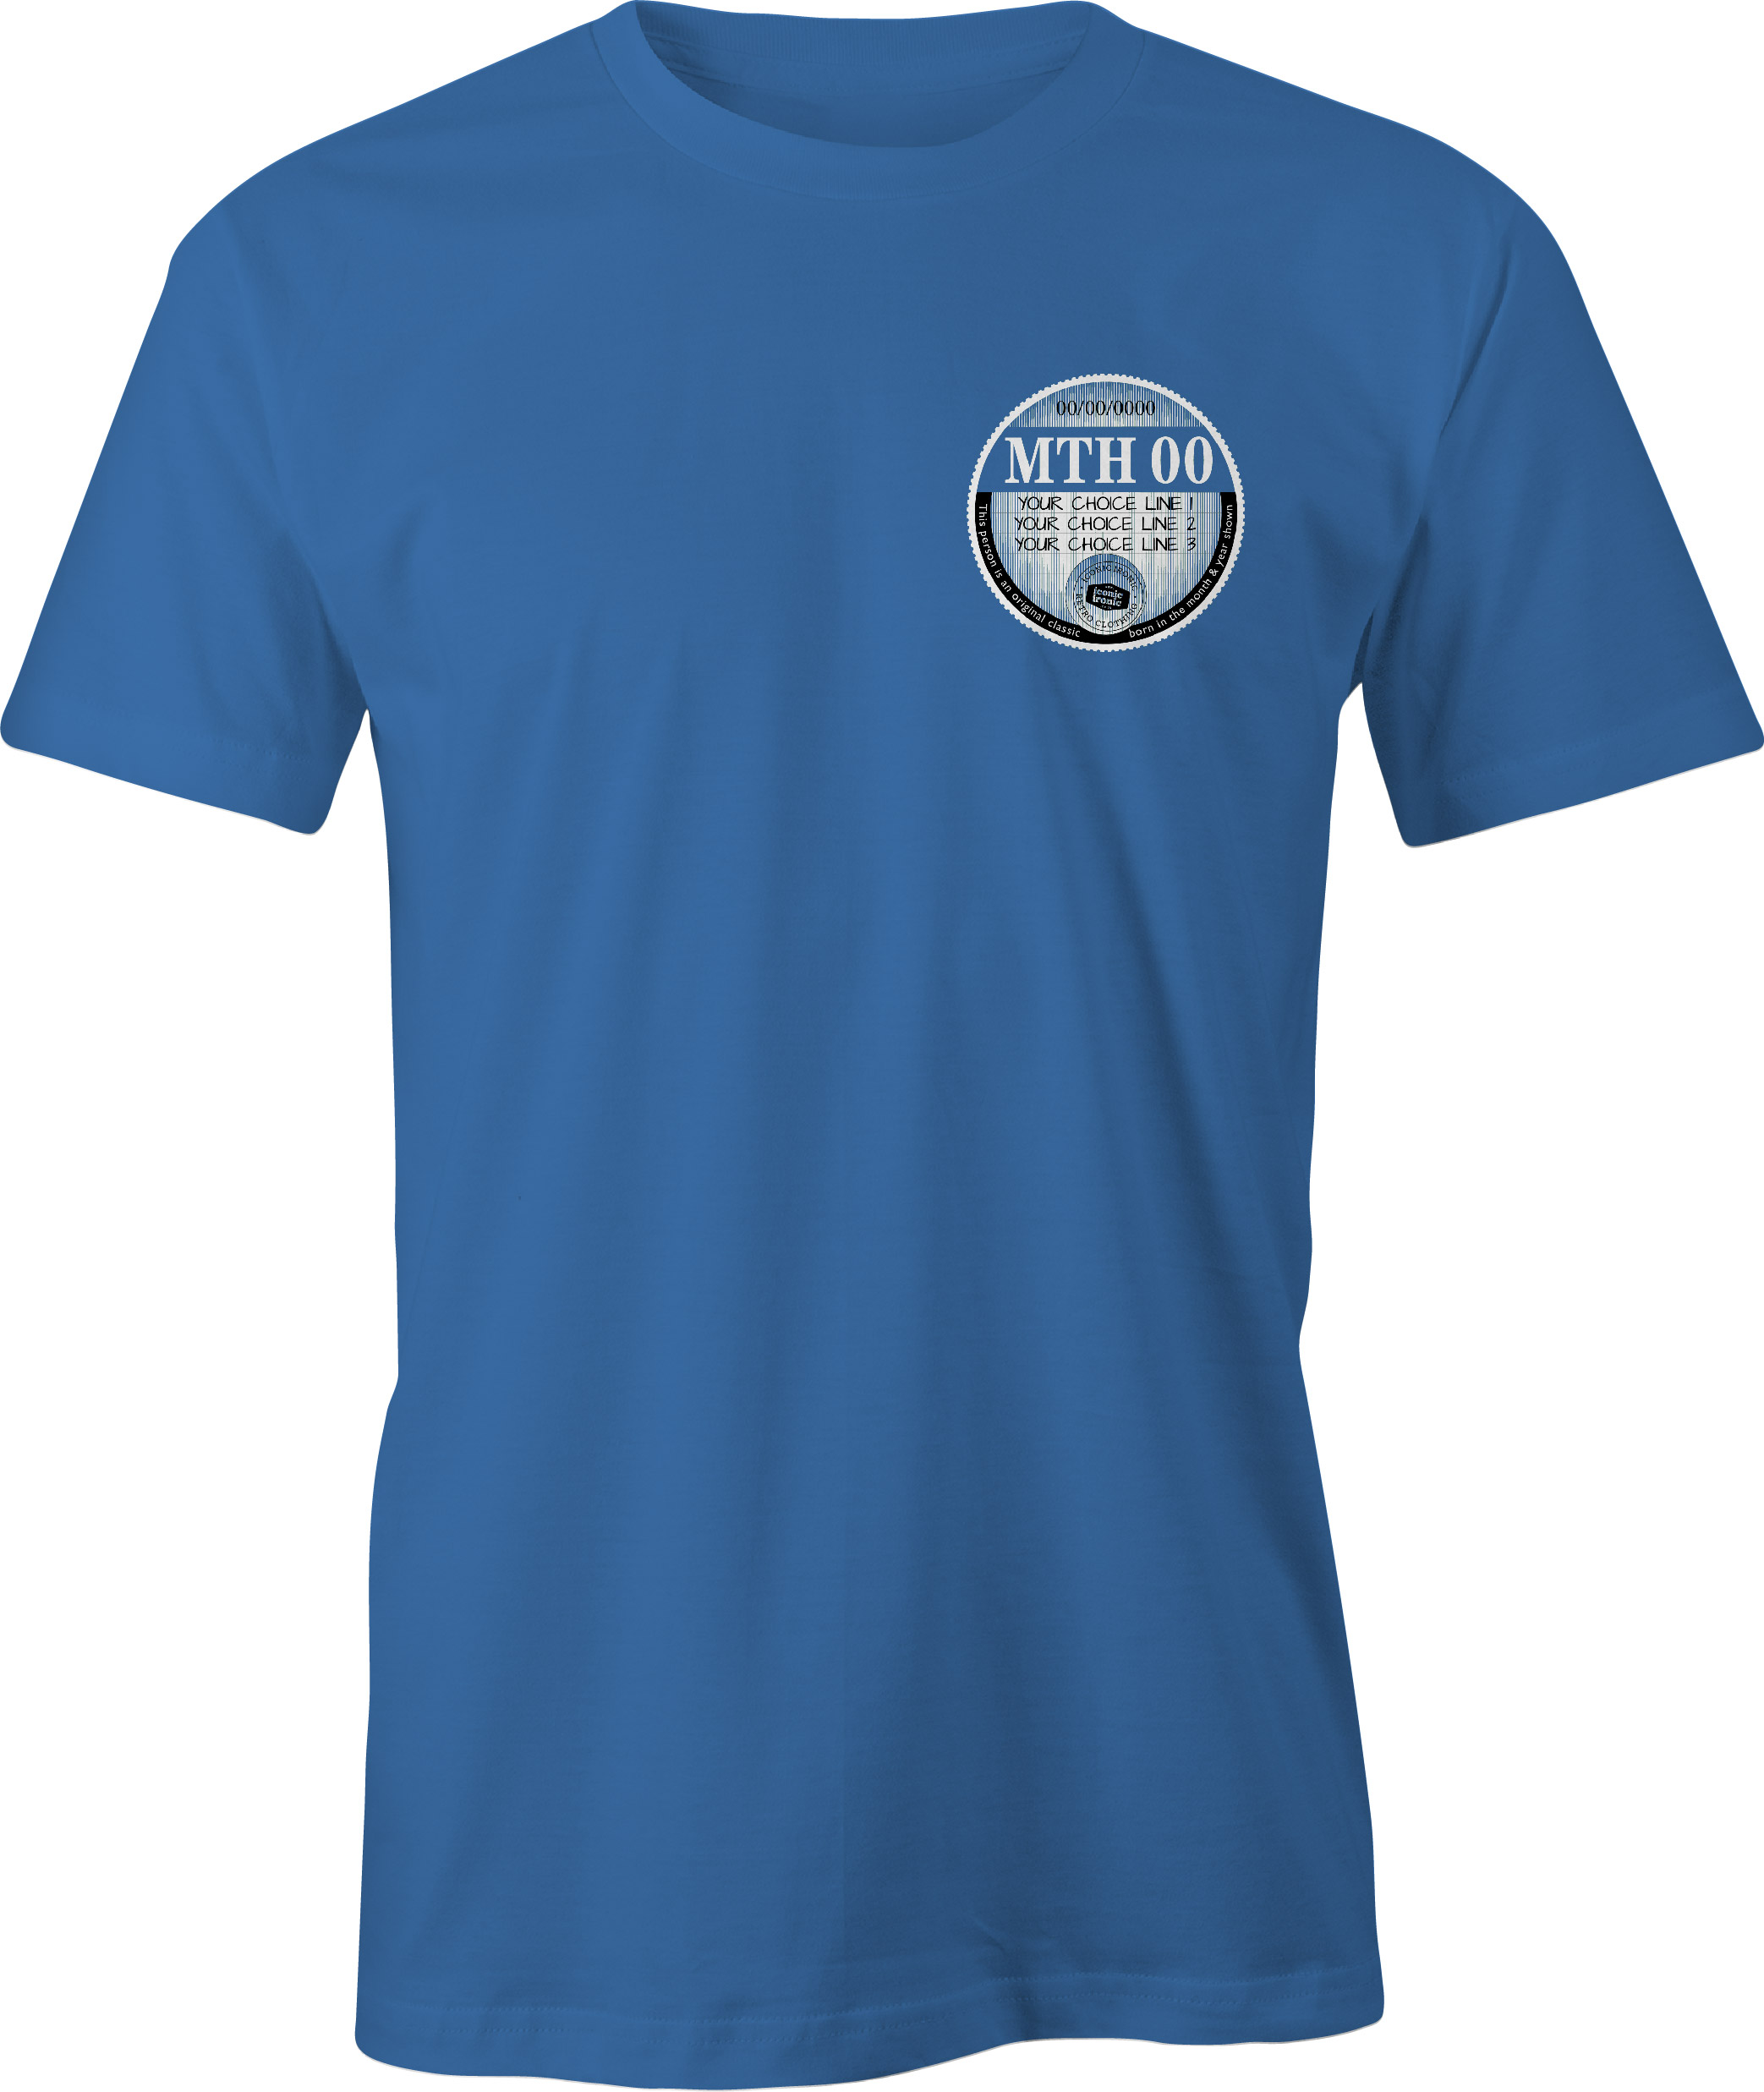 Car Tax T Shirt Royal Blue Left Chest Graphic Generic Example T Shirt